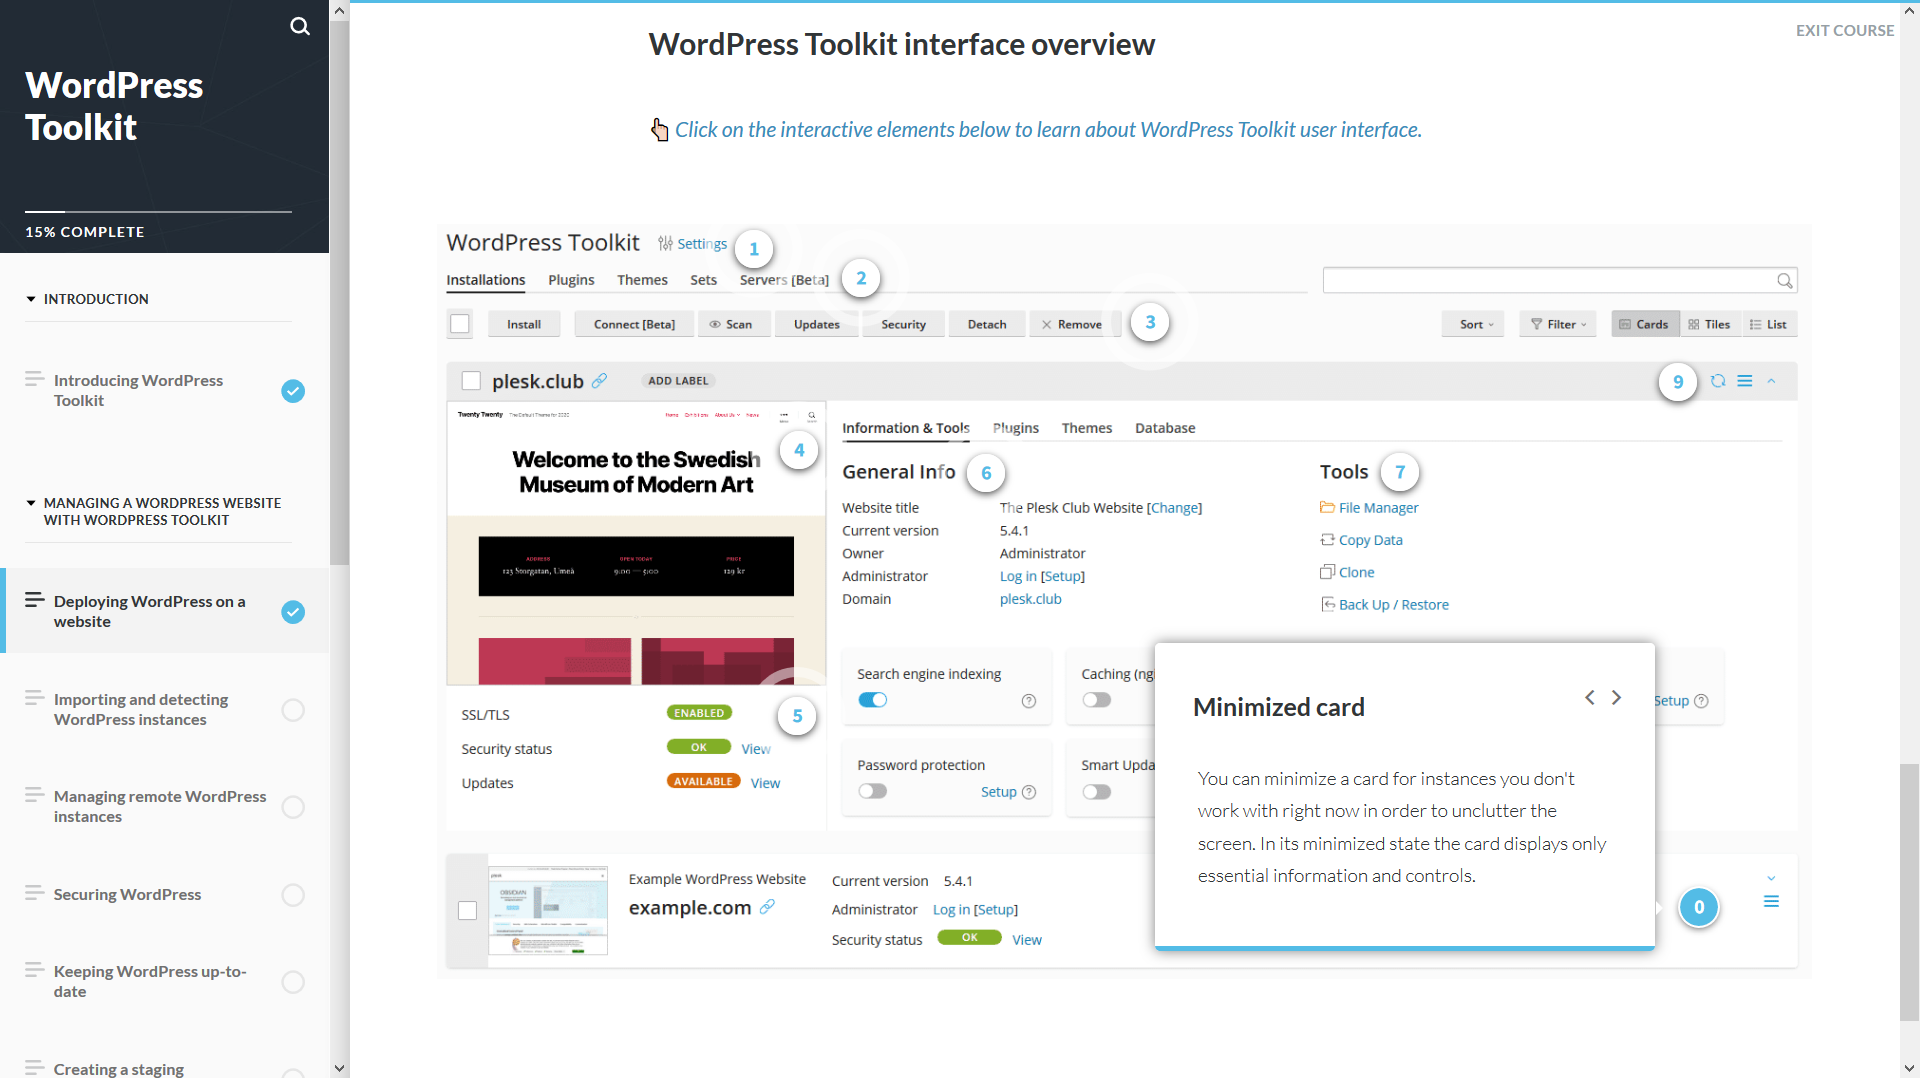 The WordPress Toolkit Course - Tech Skills for a Changing World: The 5 Most Popular Plesk University Courses - Plesk